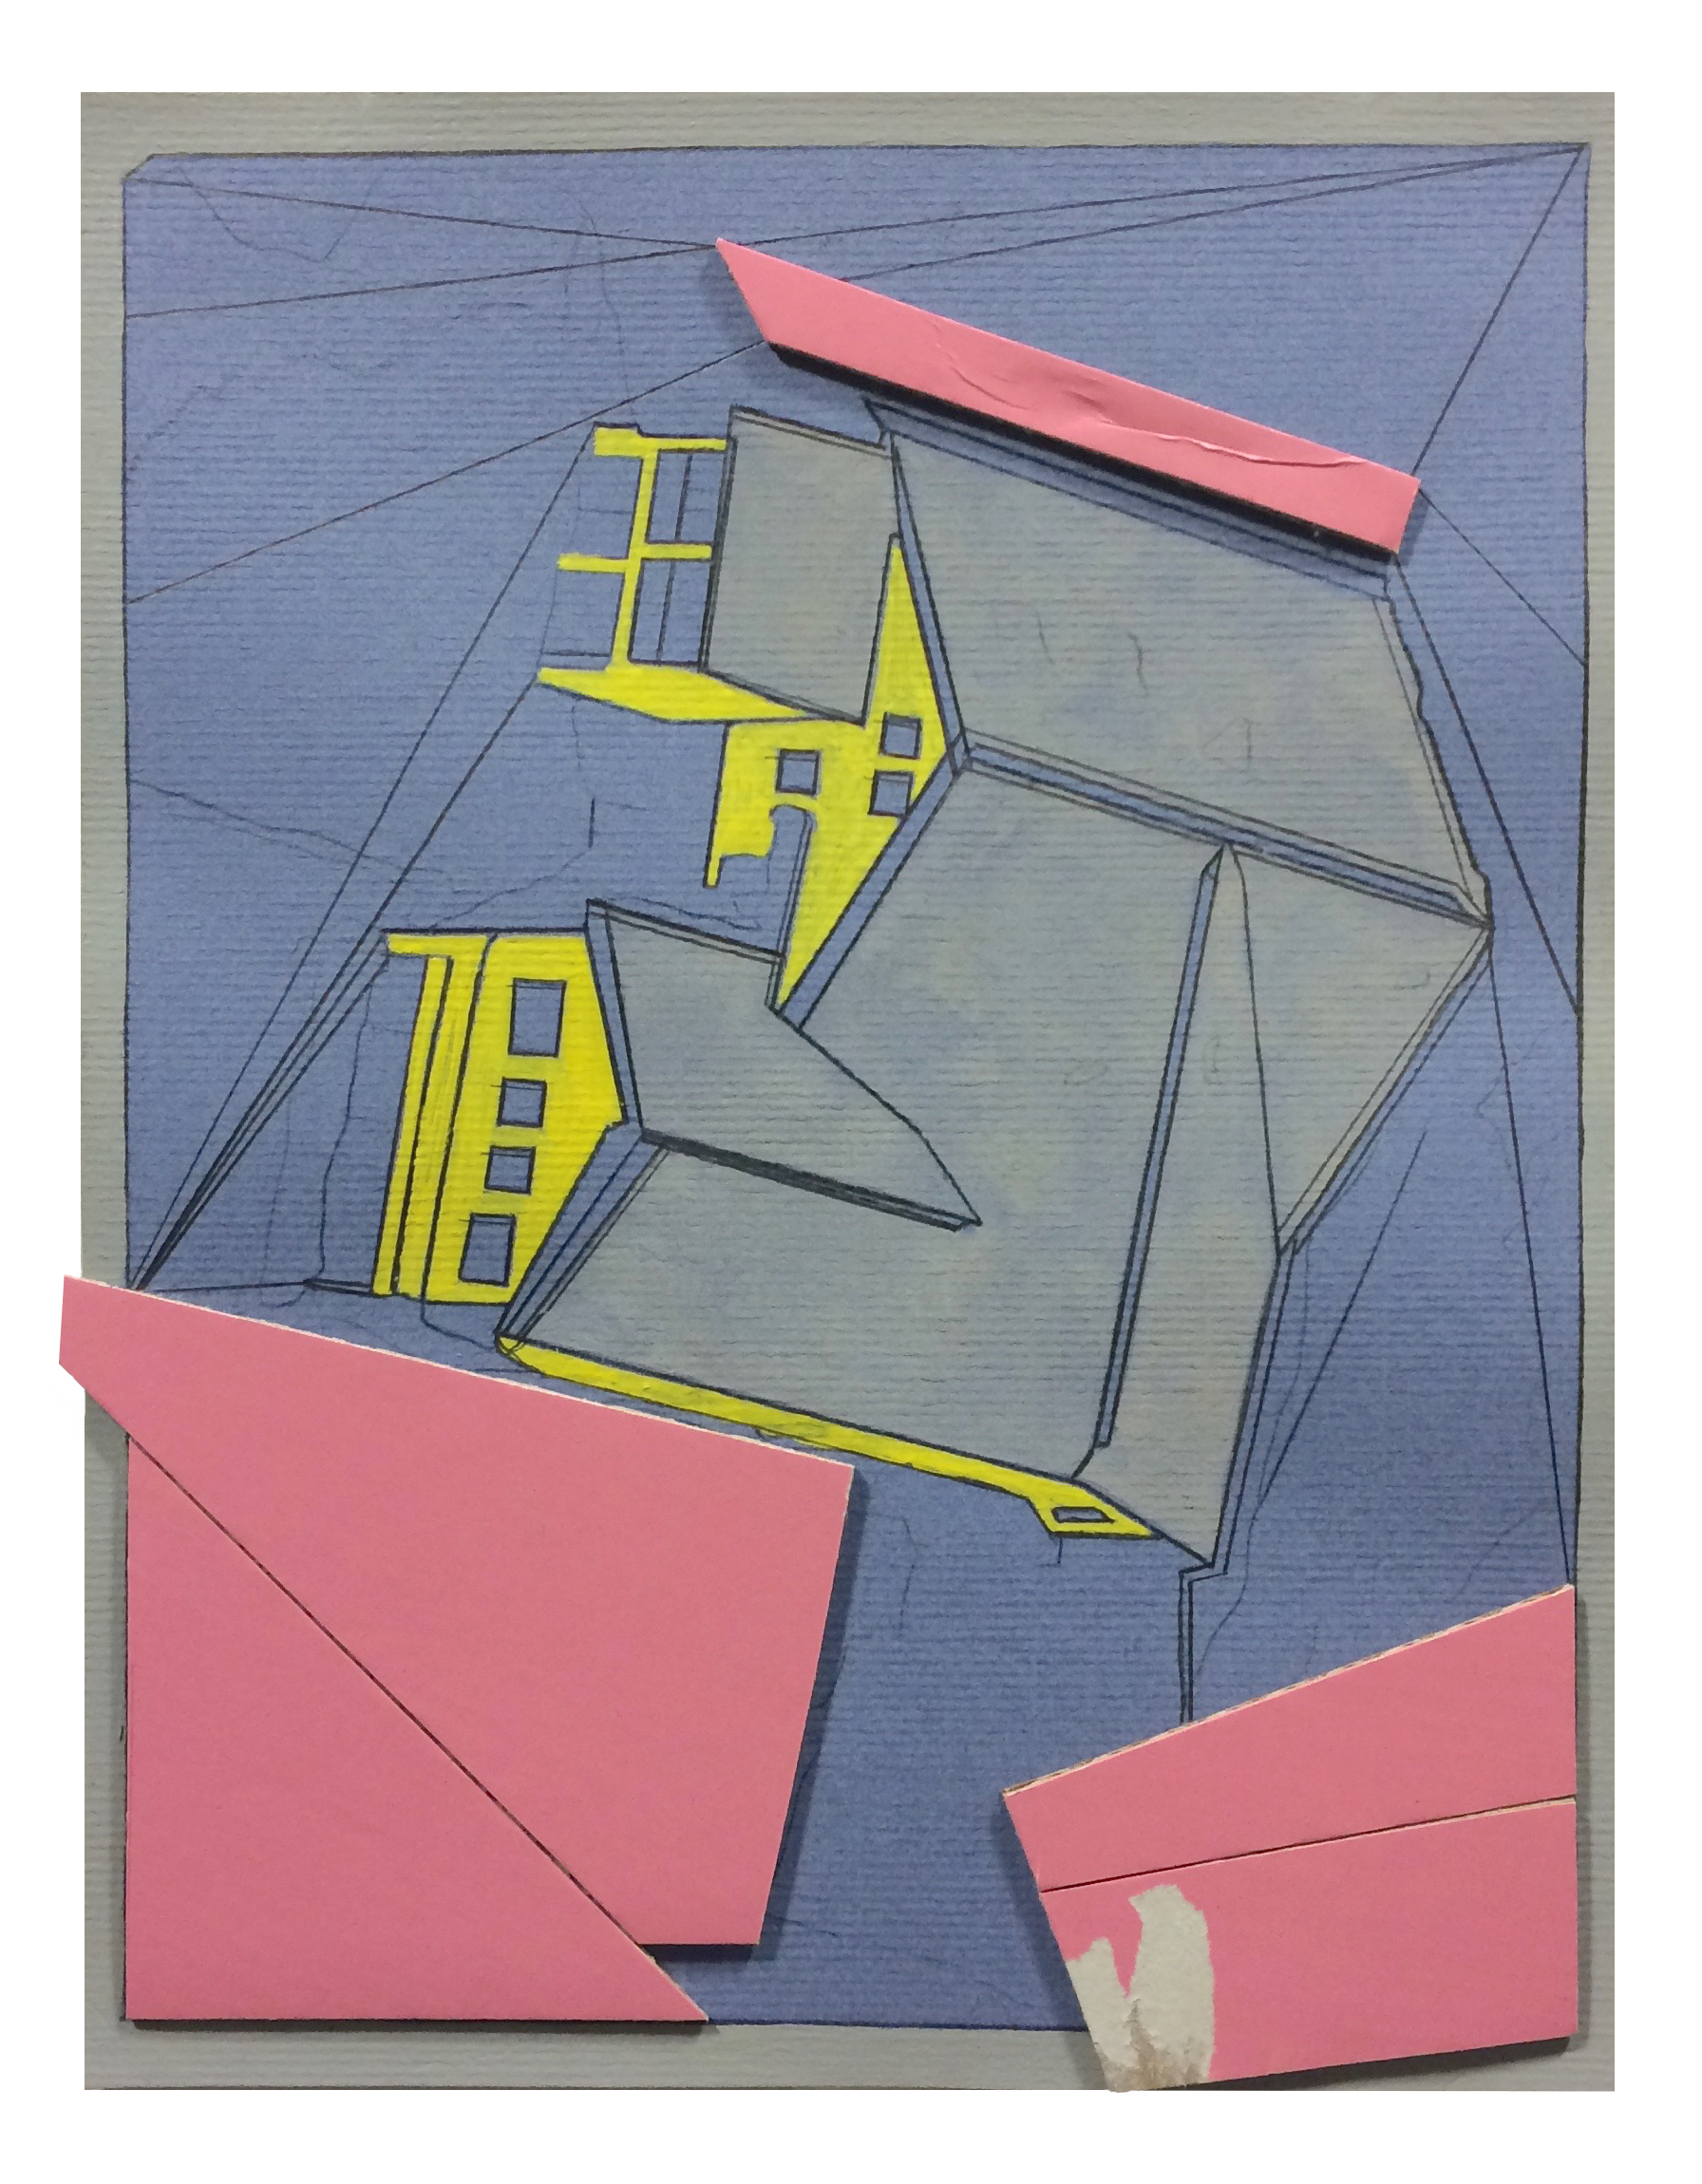 Recede  , 2015  collage, acrylic, pencil, gouache on paper  11 x 8.5 inches